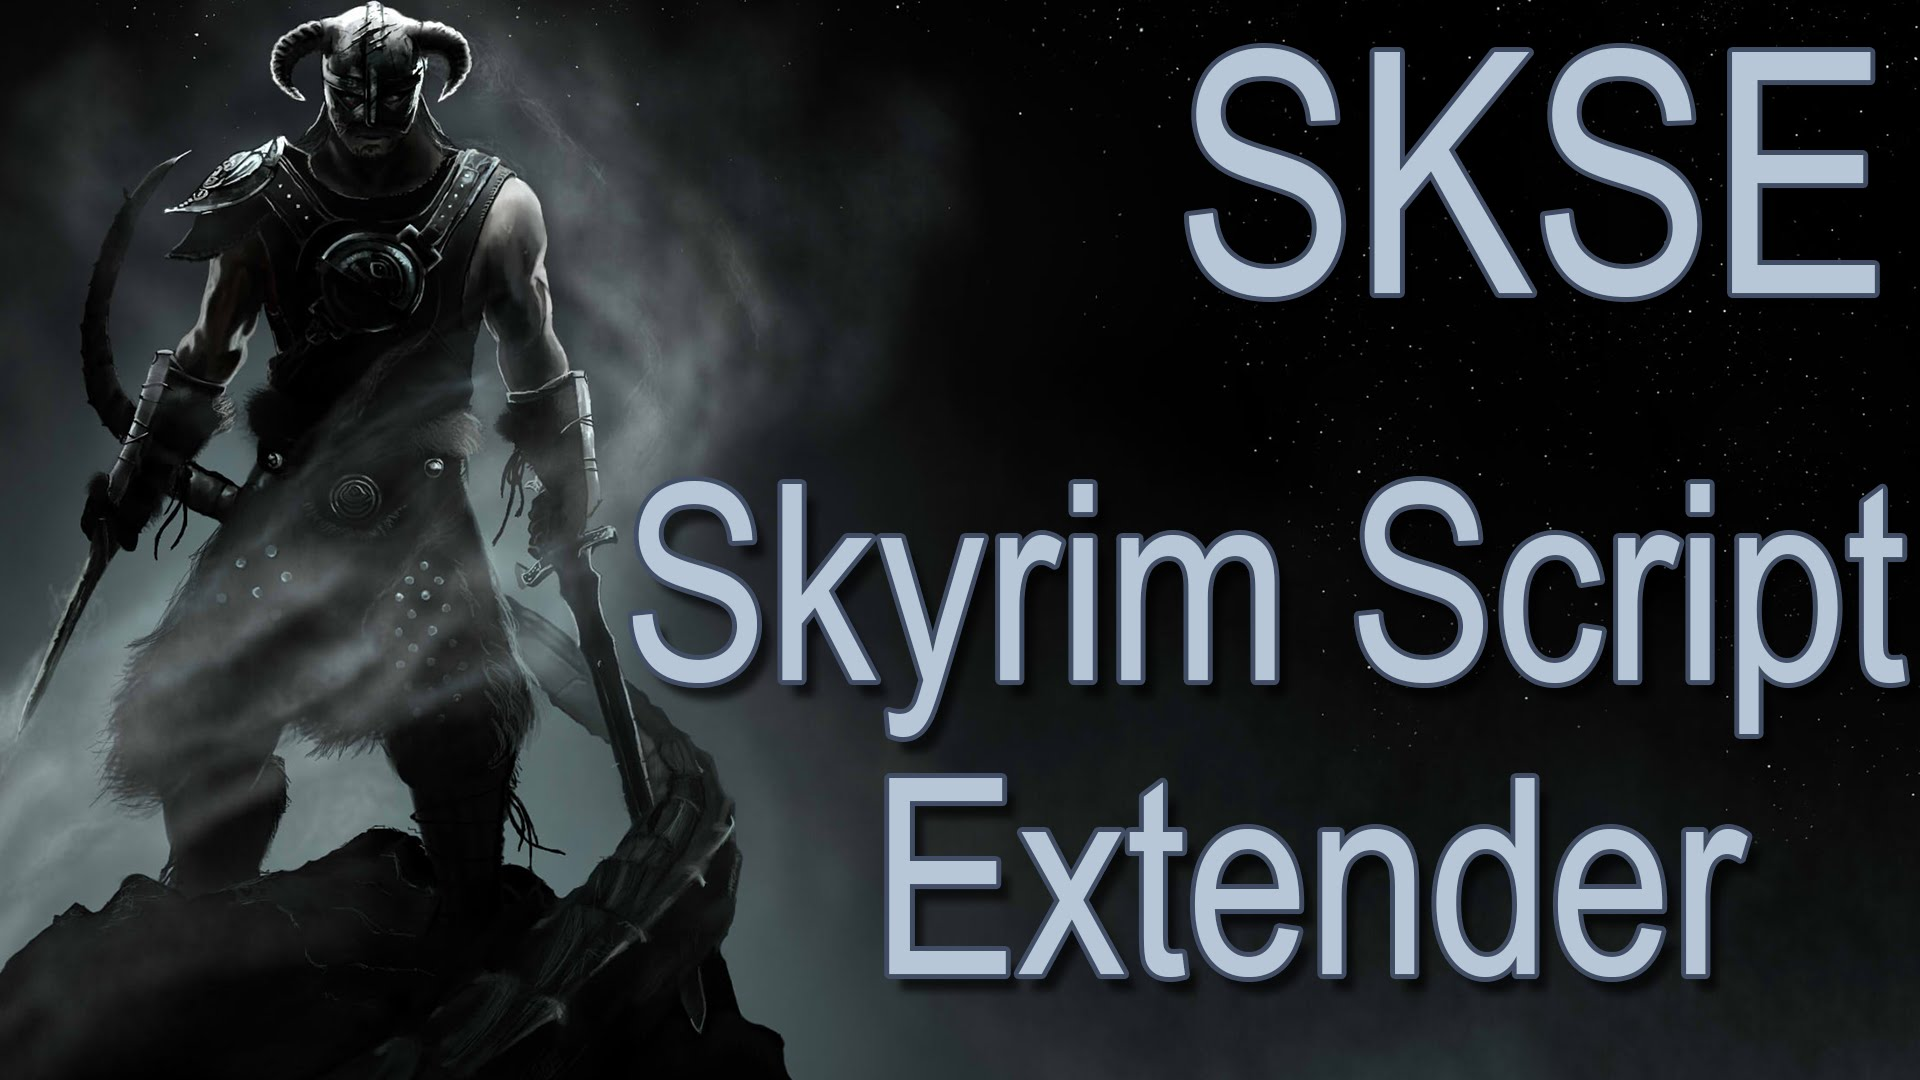 Skyrim Script Extender 64 is now available in alpha